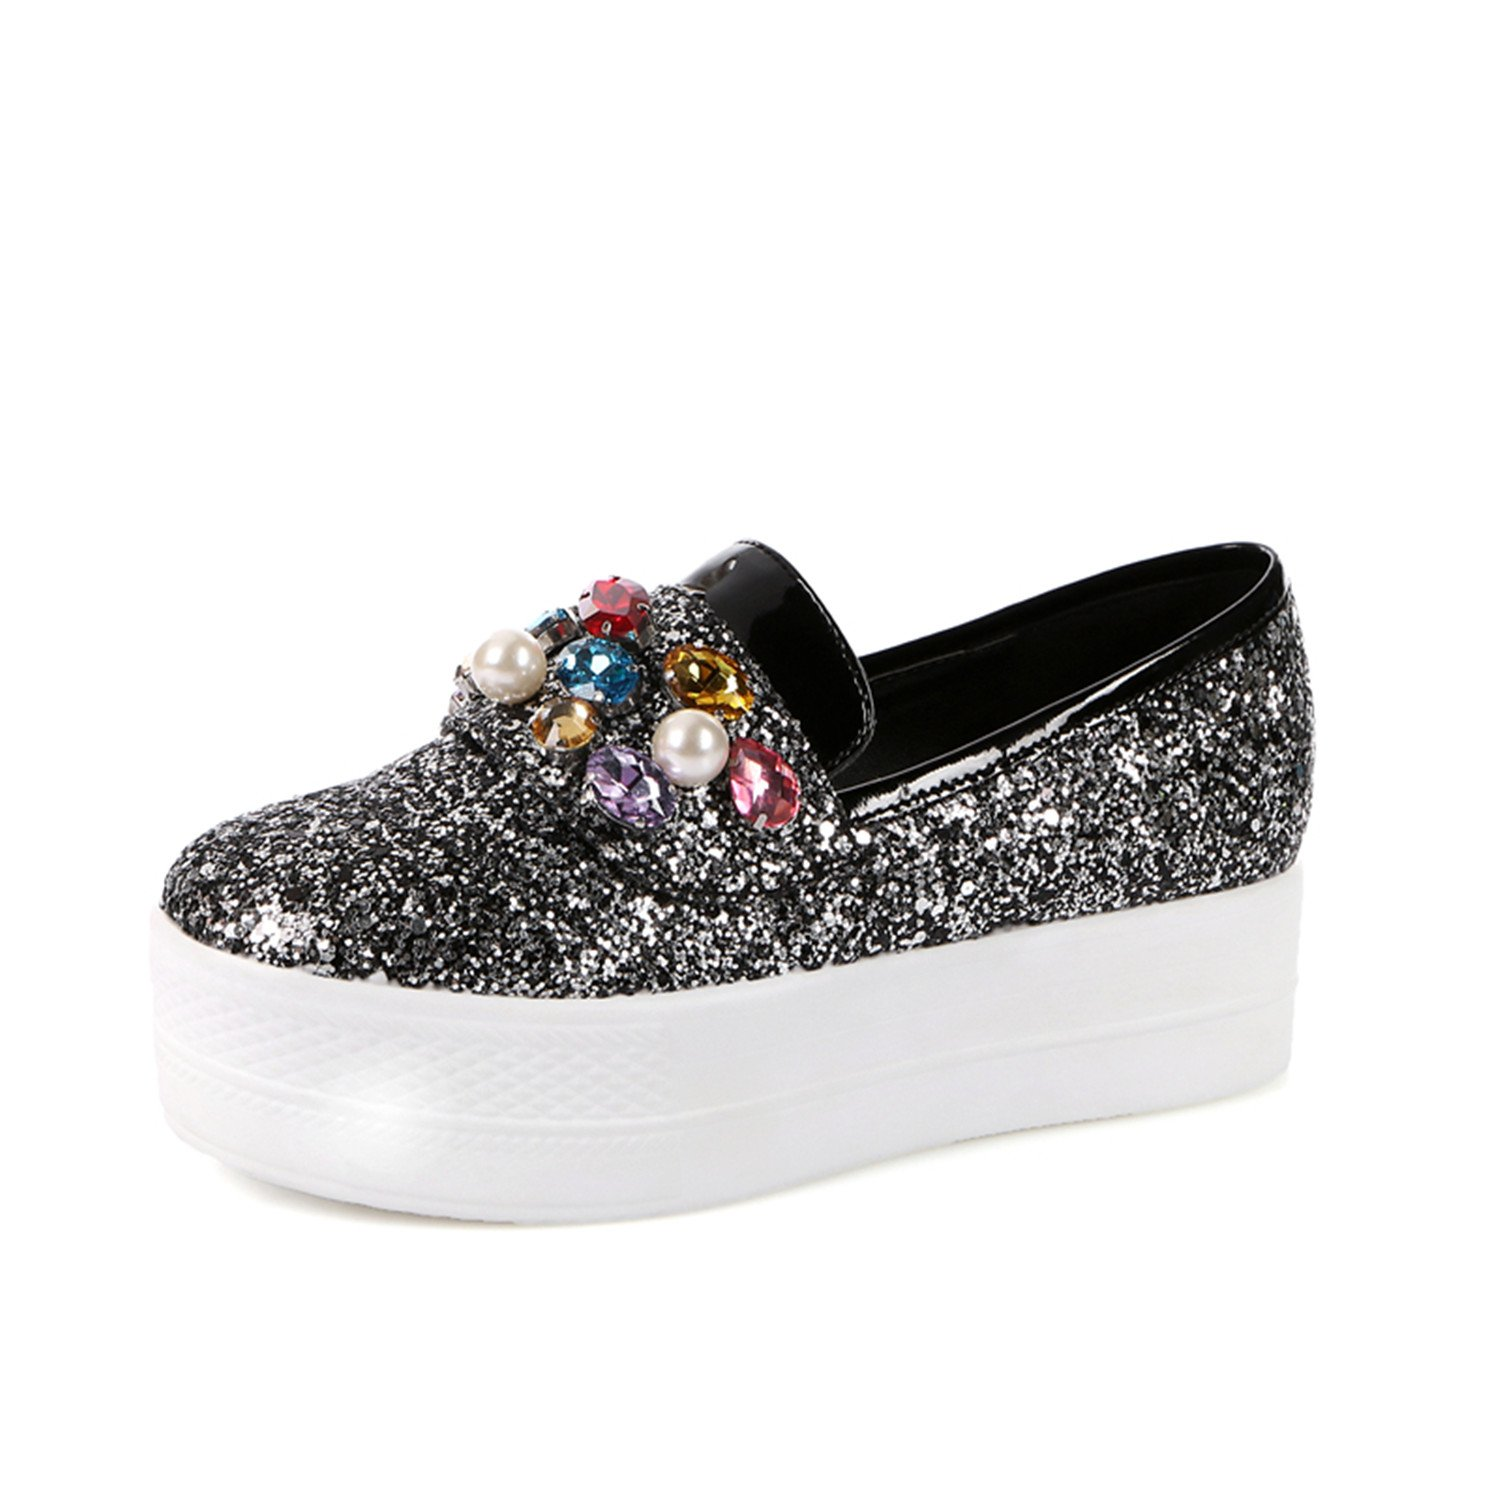 Naomiky Large Sizes 33-43 New Casual Flat Platform Pearls Crystals Bling Upper Women Shoes Woman